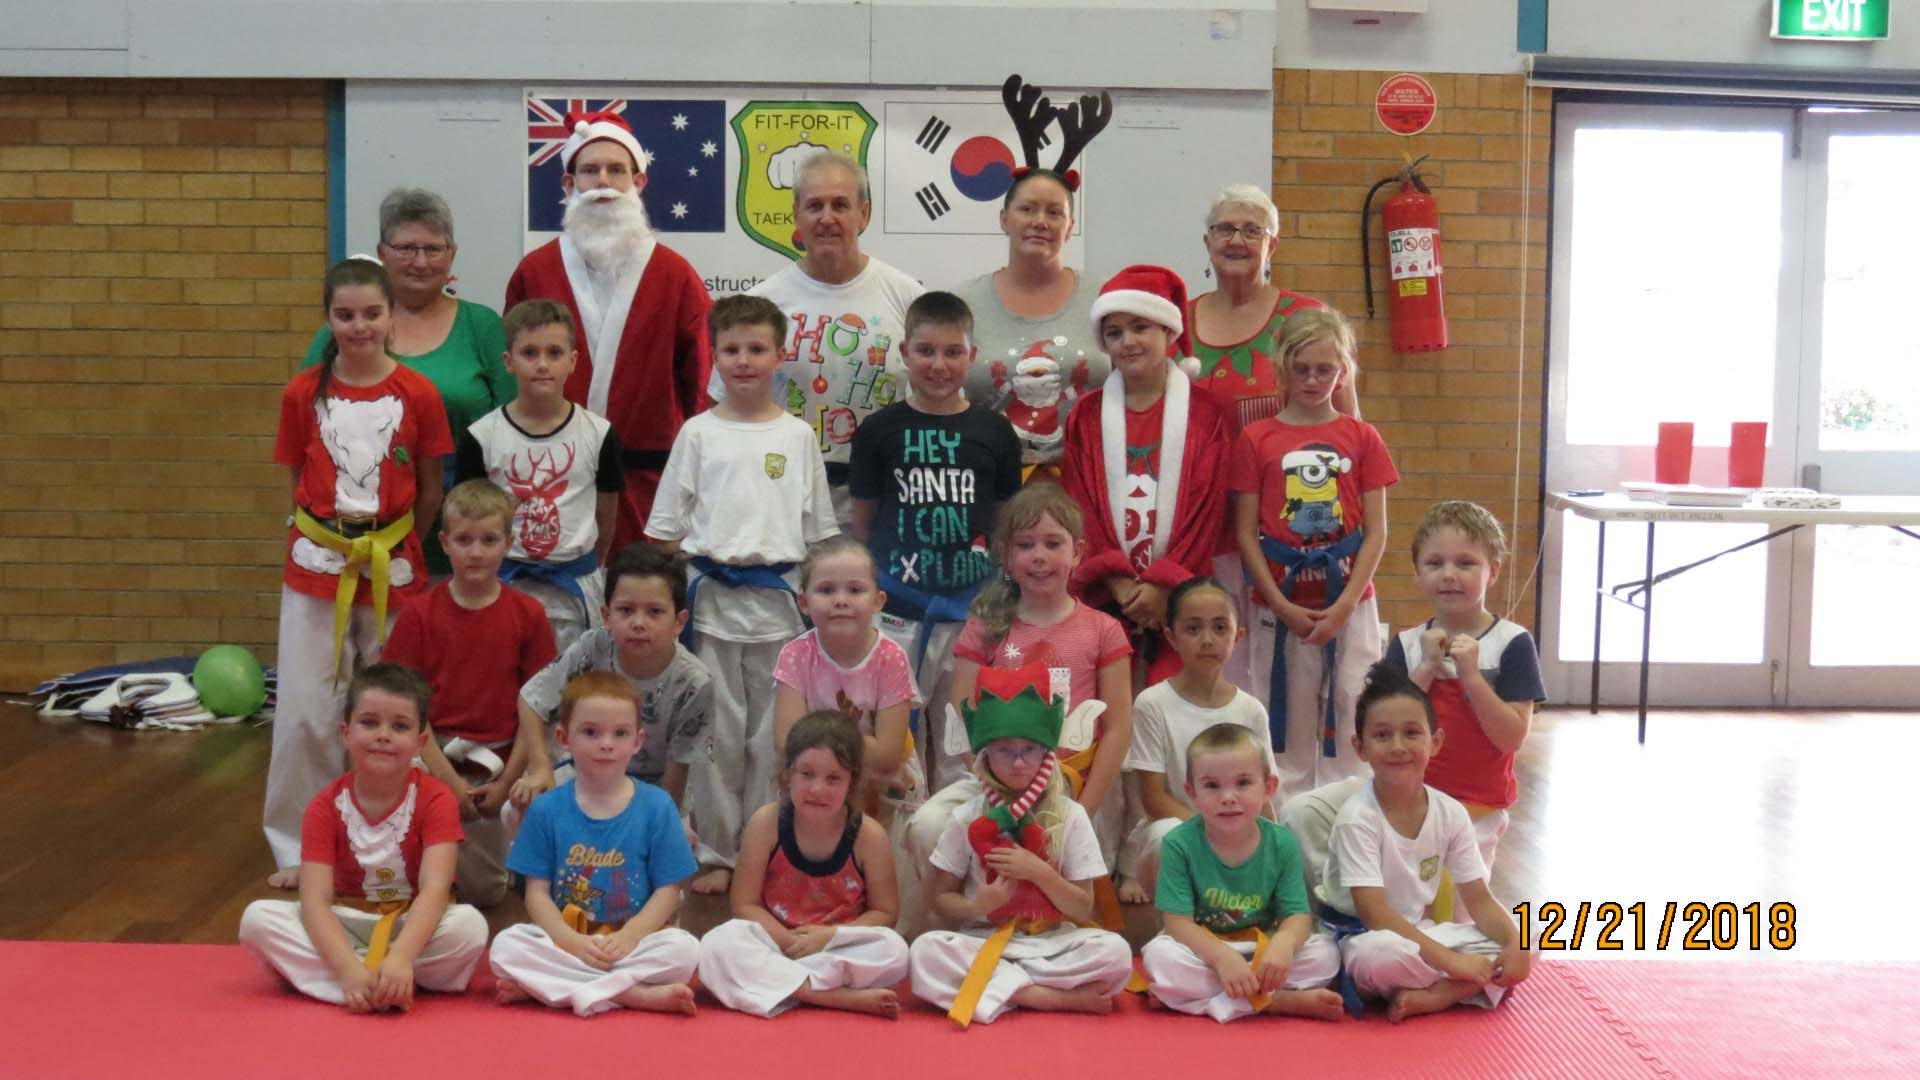 The Tamworth Martial Arts Team all dressed up in Christmas gear for their end of year photo.